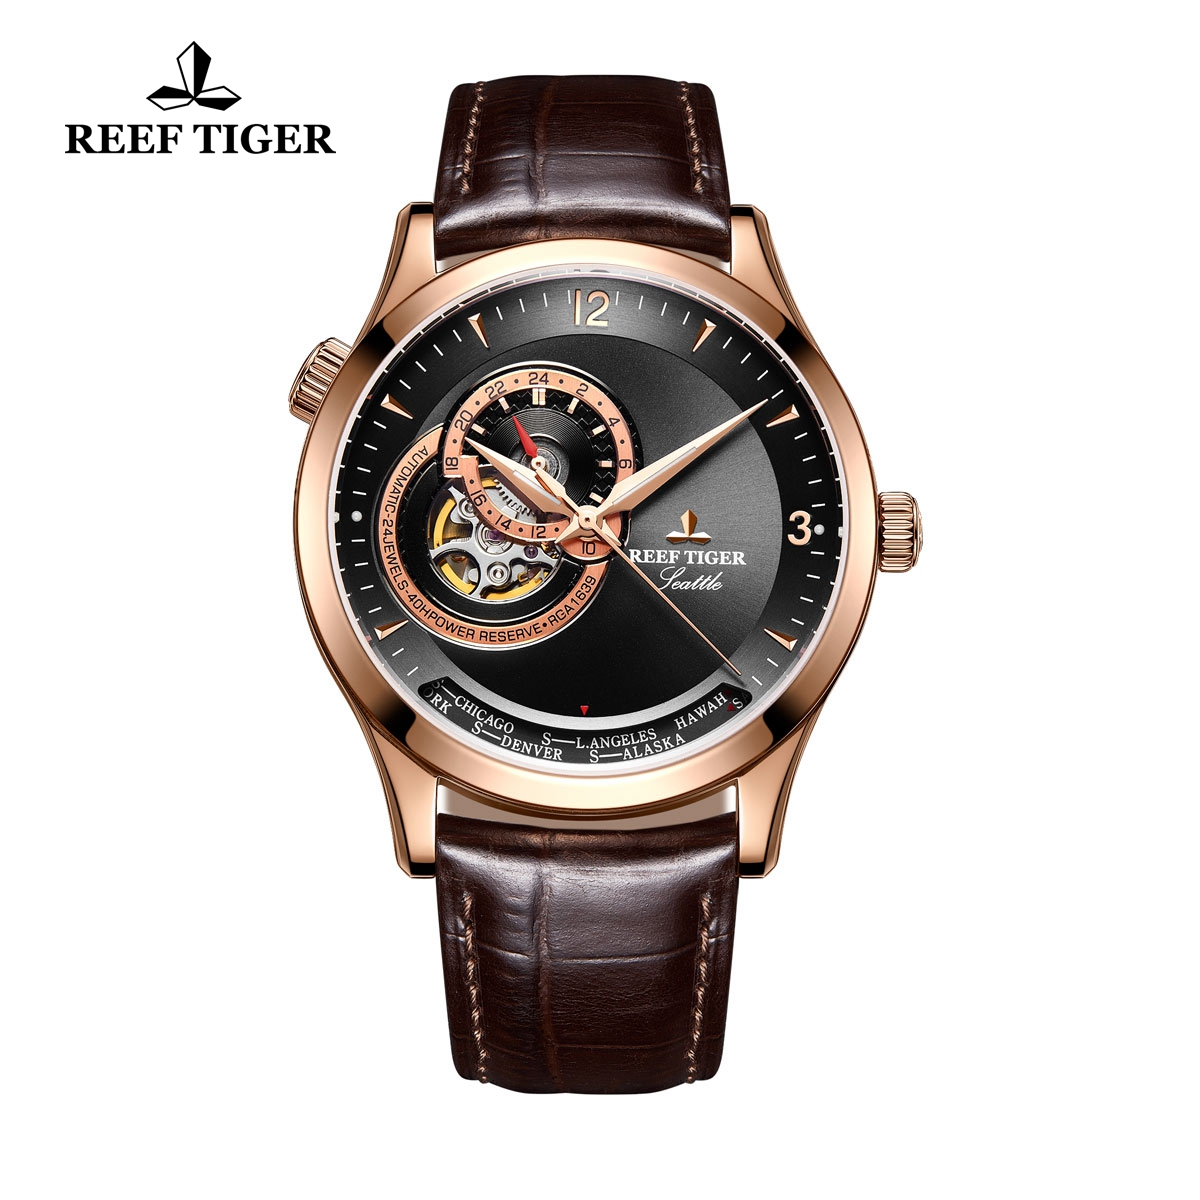 Reef Tiger Seattle Sailing Rose Gold Dress Automatic Watch Black Dial Brown Leather Strap RGA1693-PBS